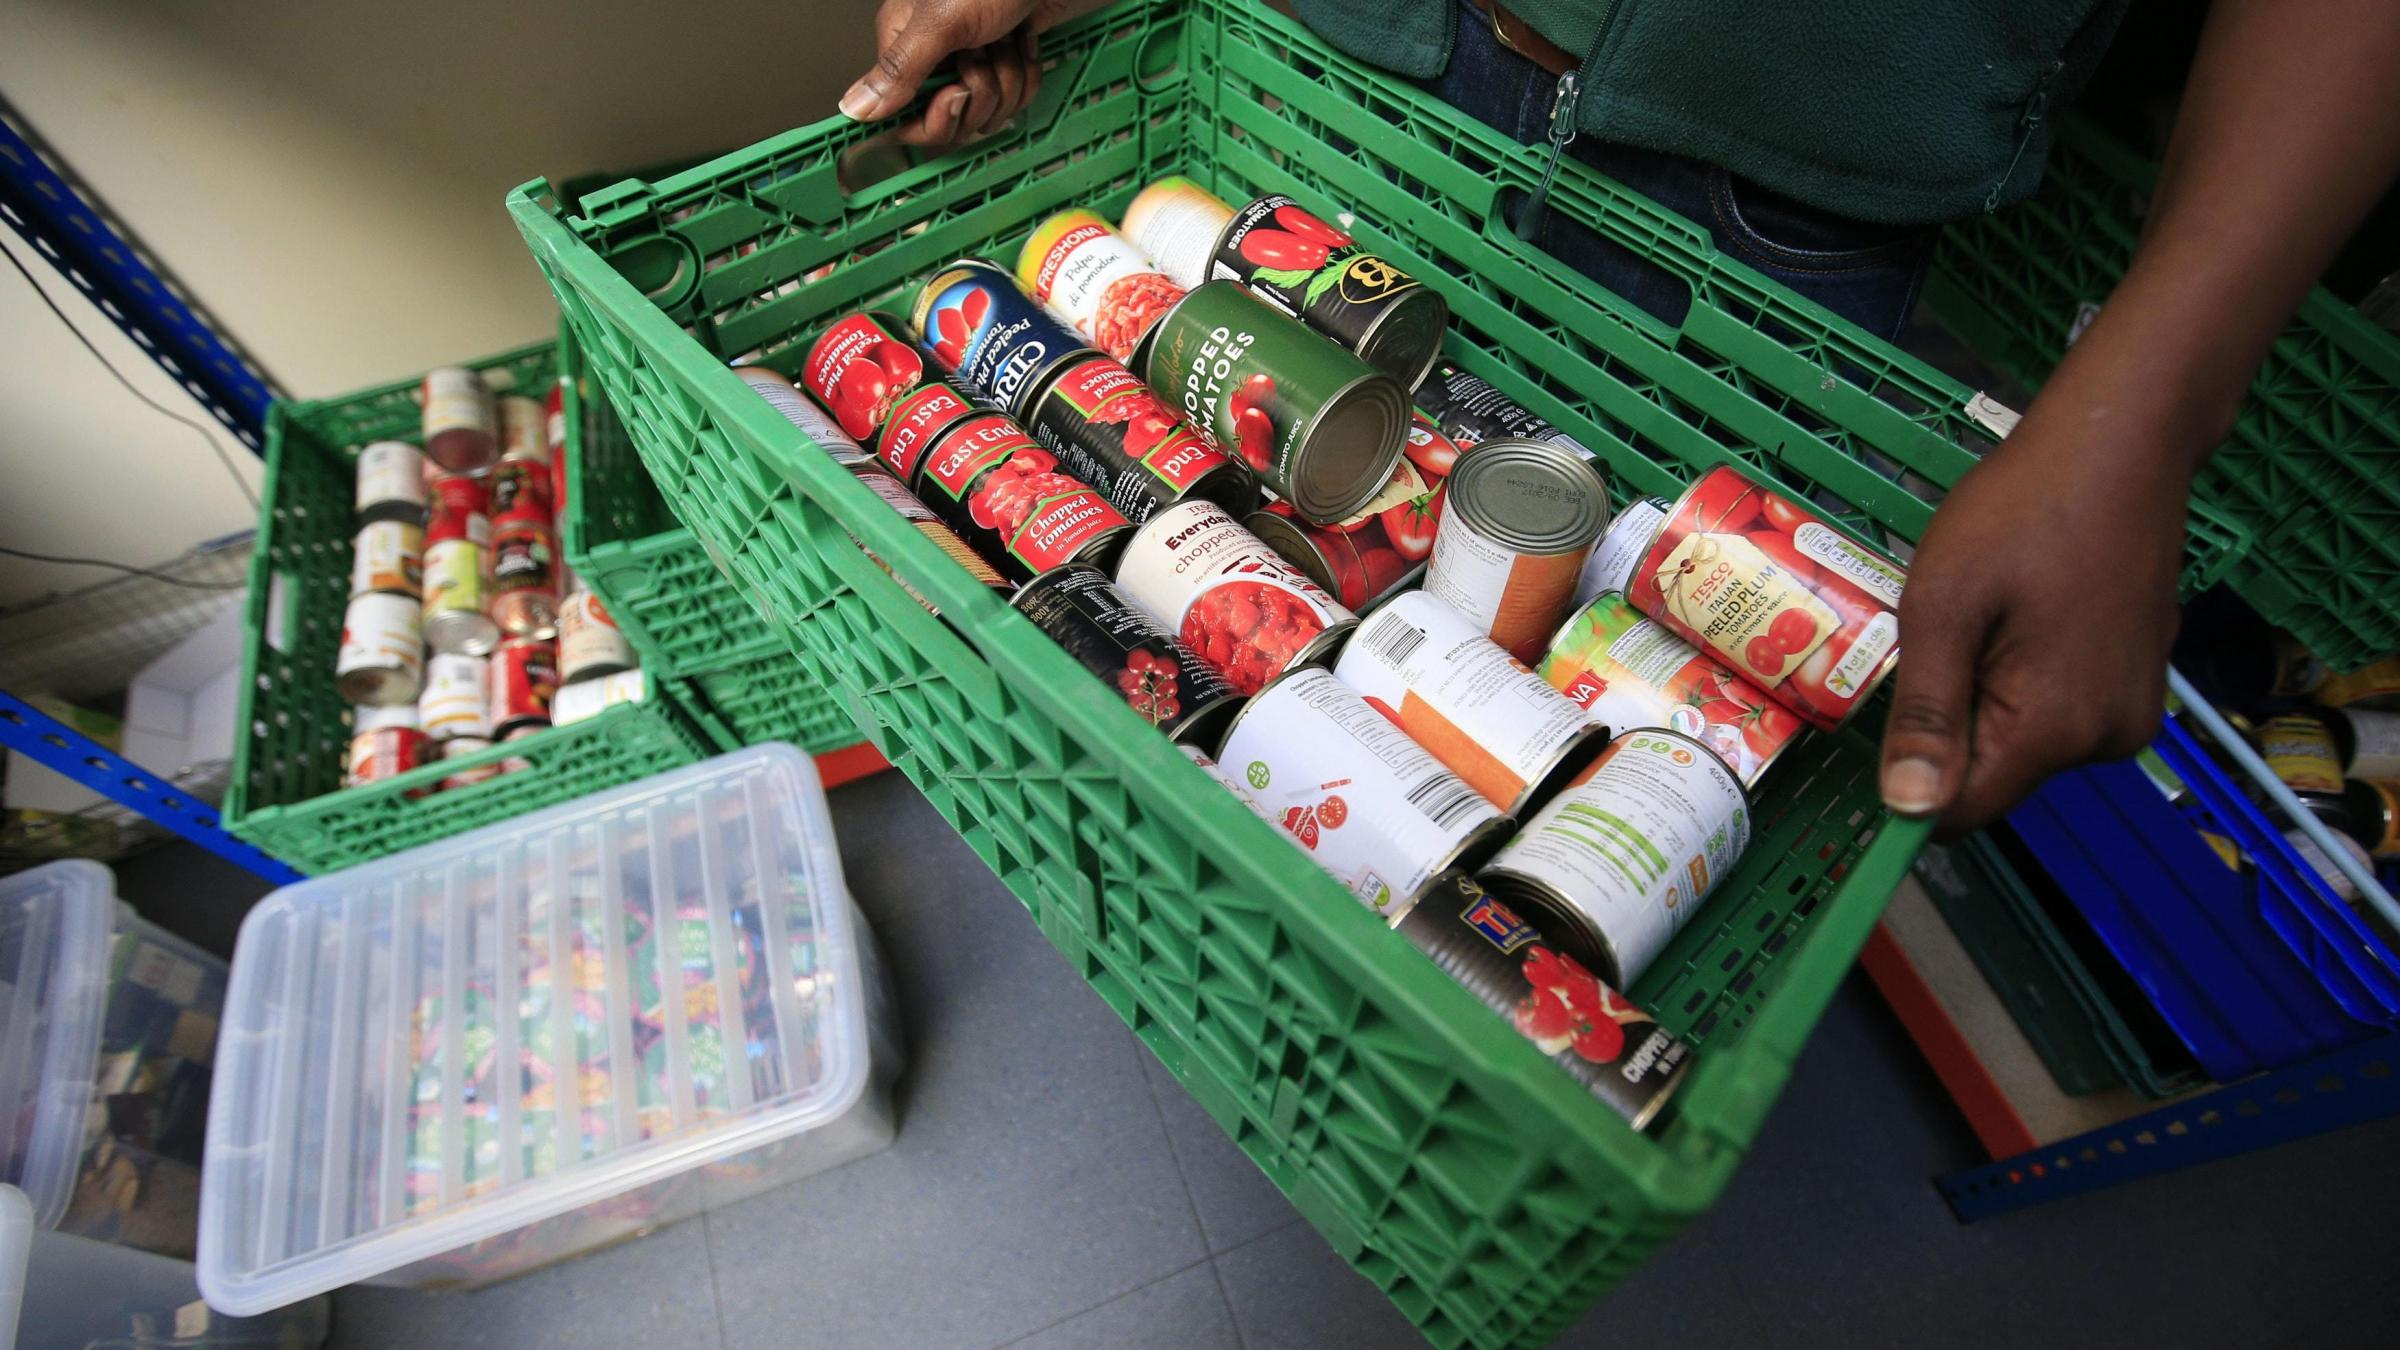 Glasgow foodbanks 'hand out highest amount' of emergency parcels in Scotland